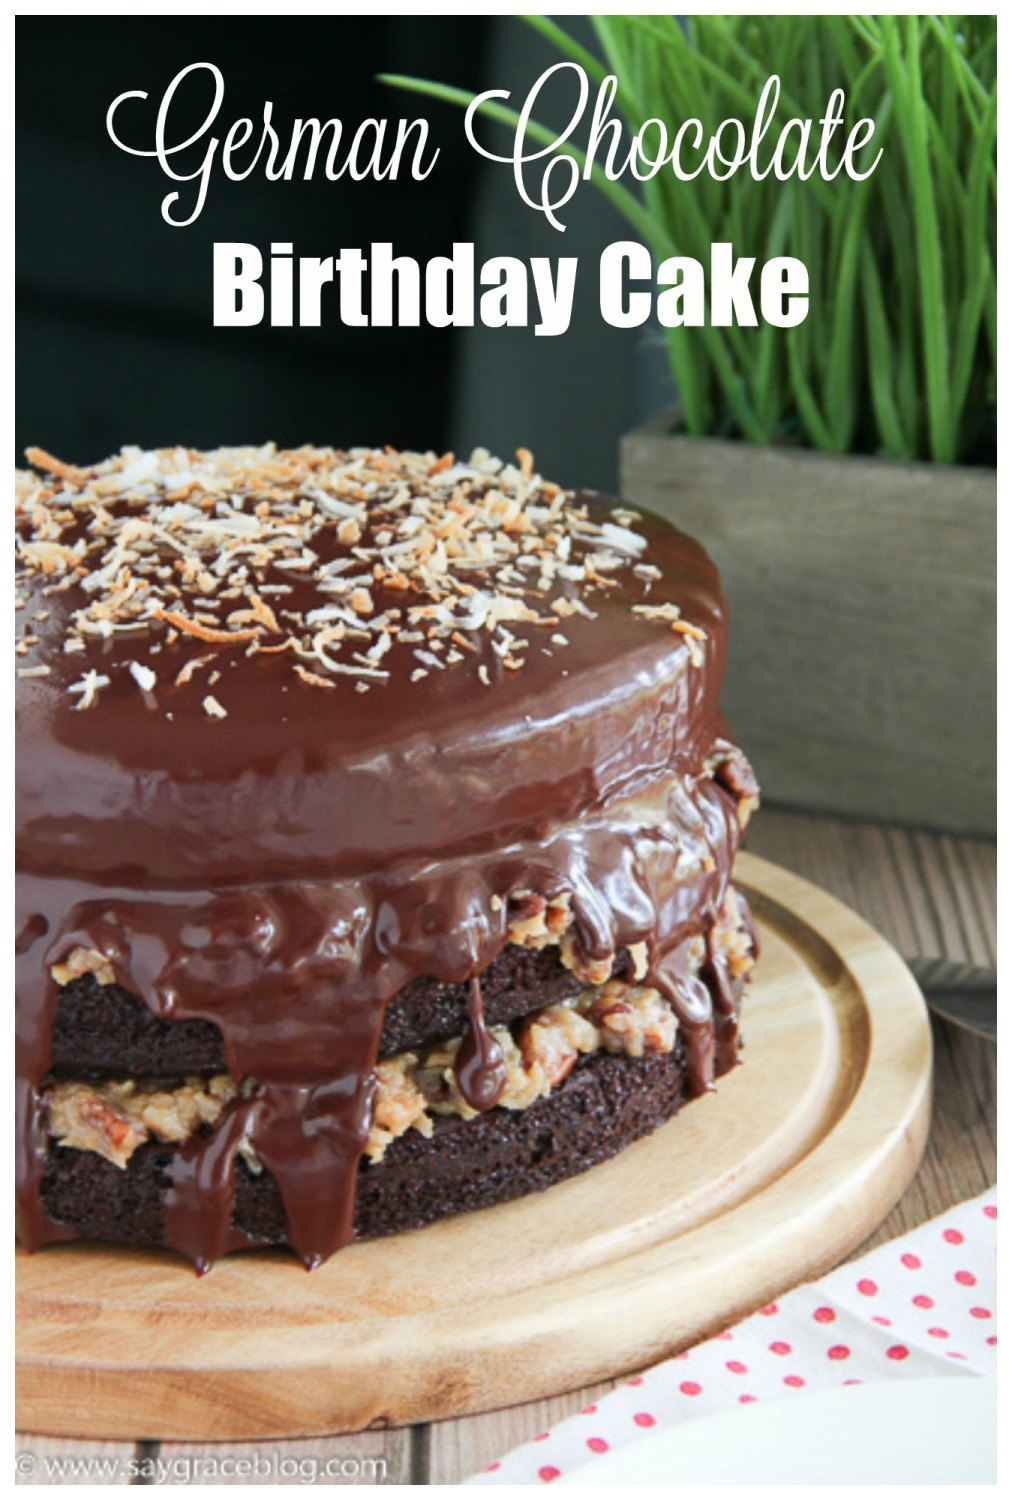 German Chocolate Birthday Cake | Say Grace